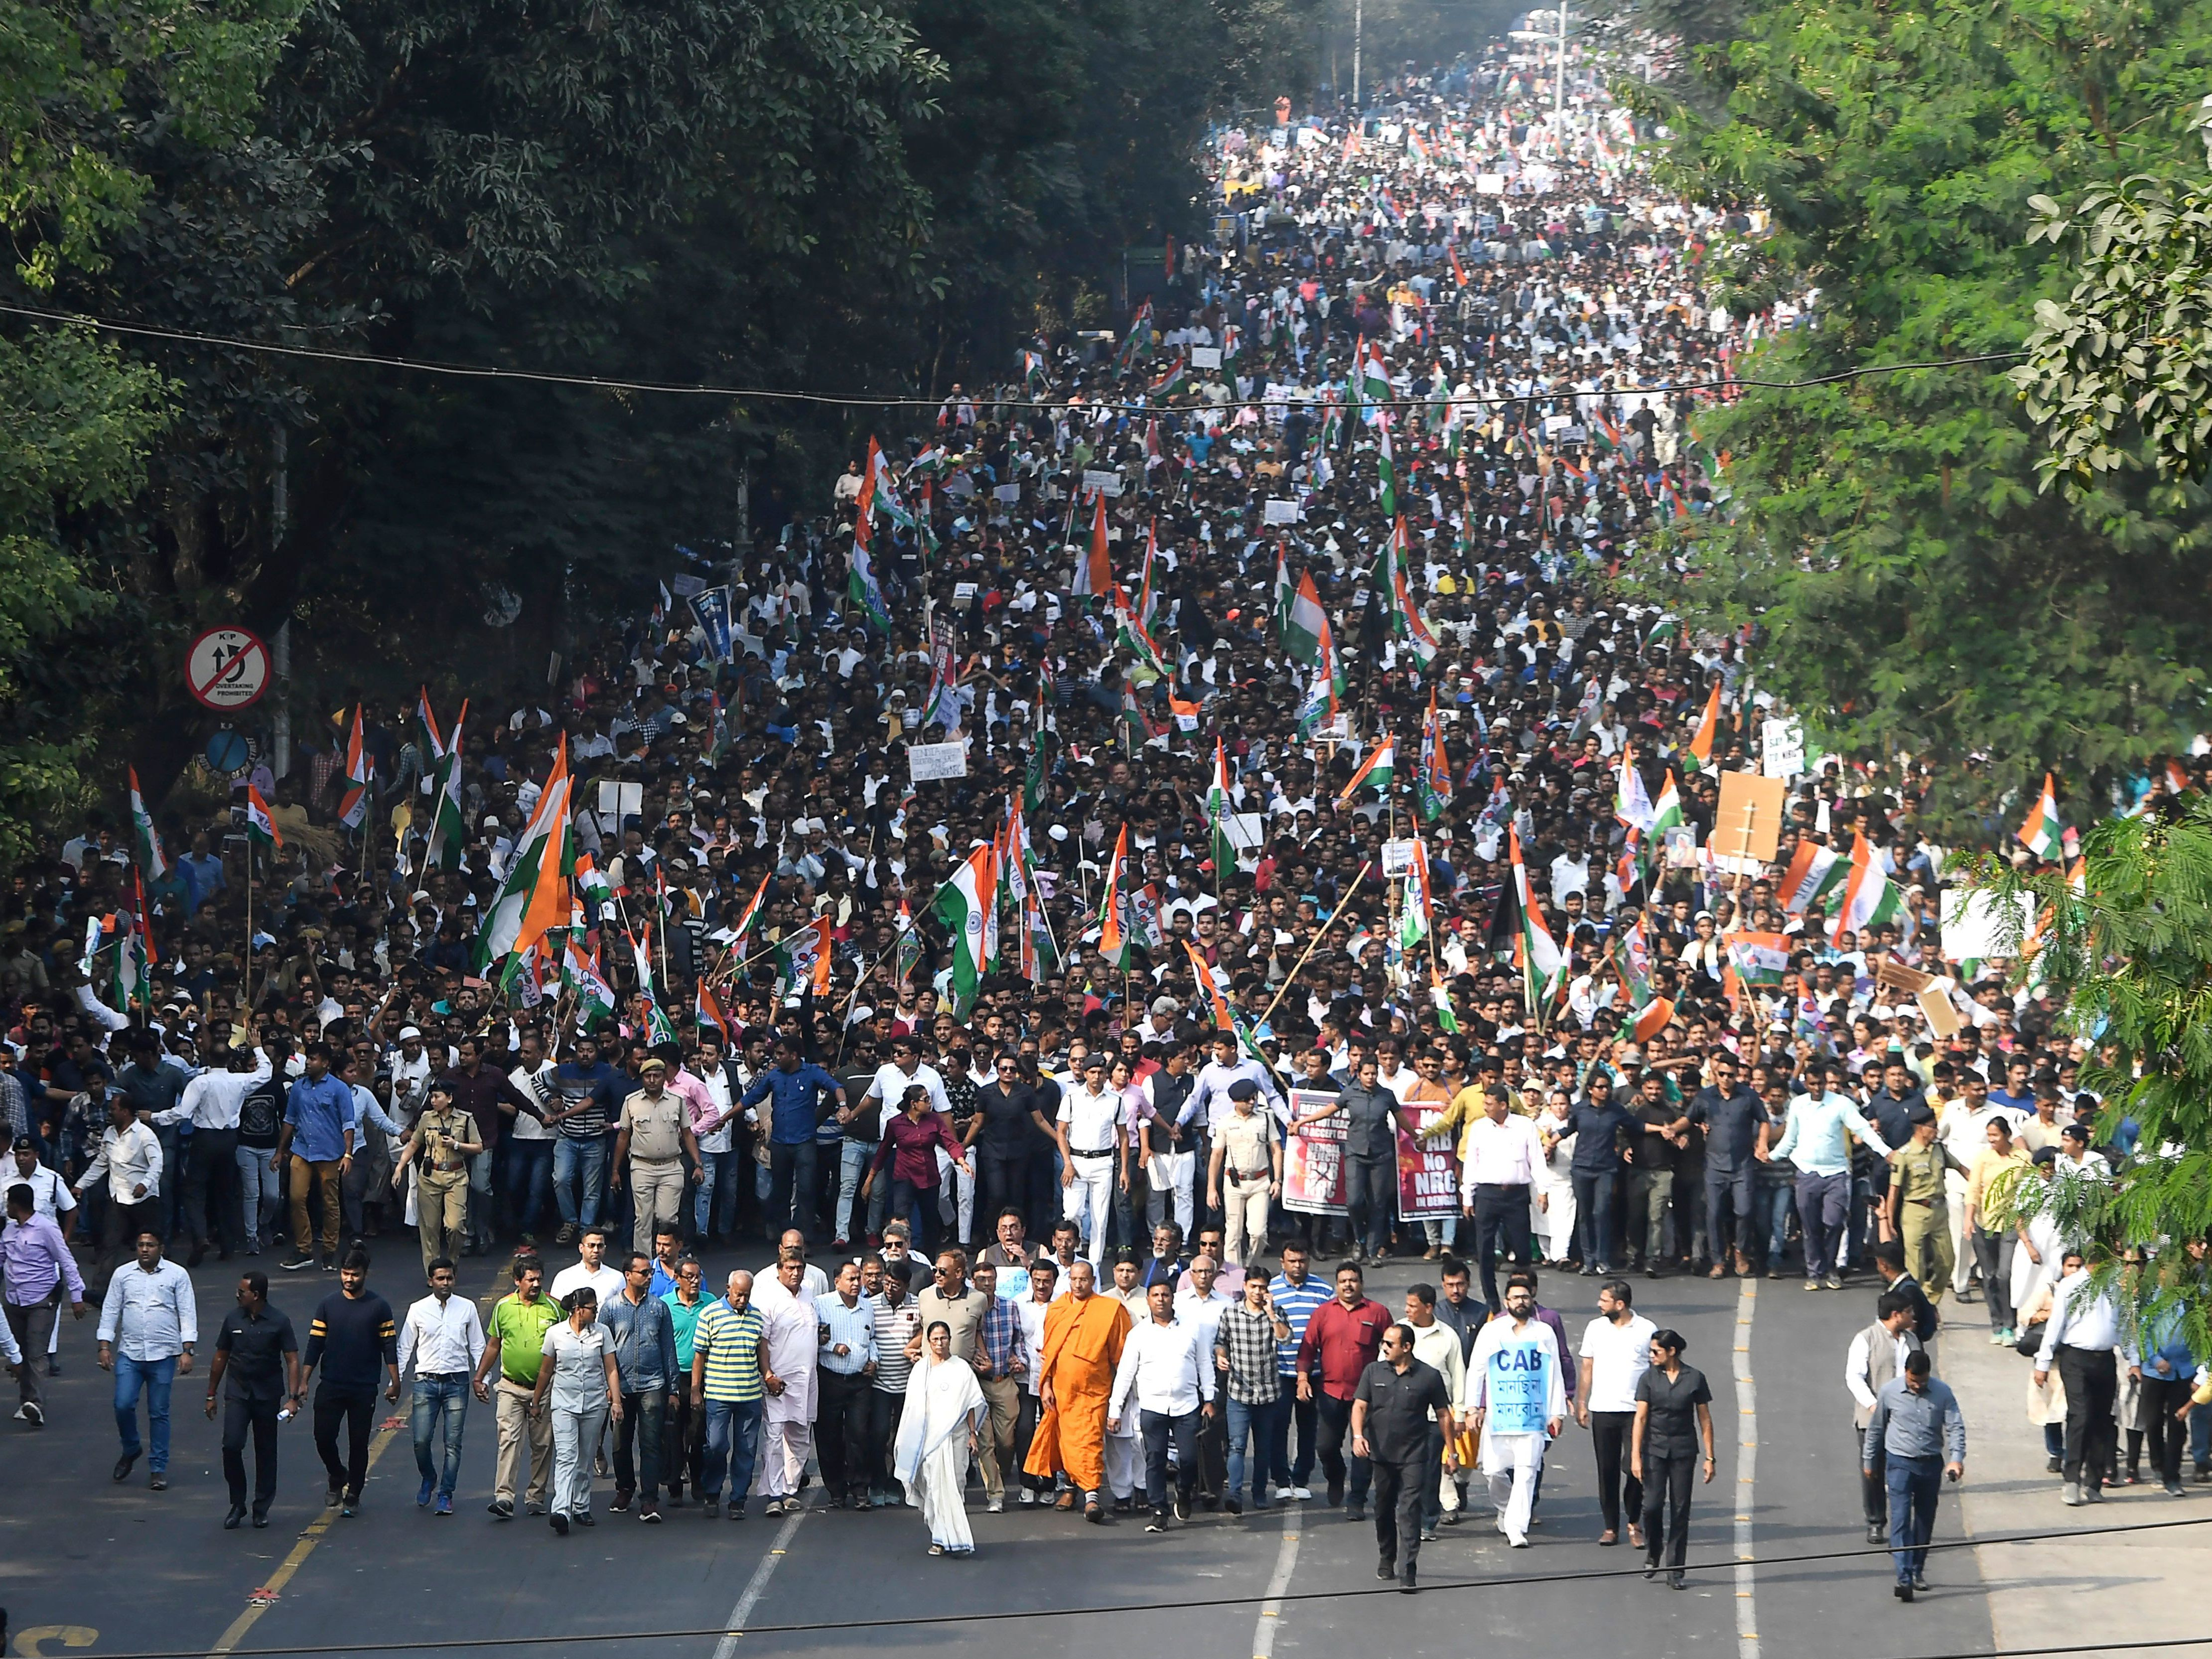 India's Citizenship Law Triggers Mass Protests And Violence As Modi Calls For Peace